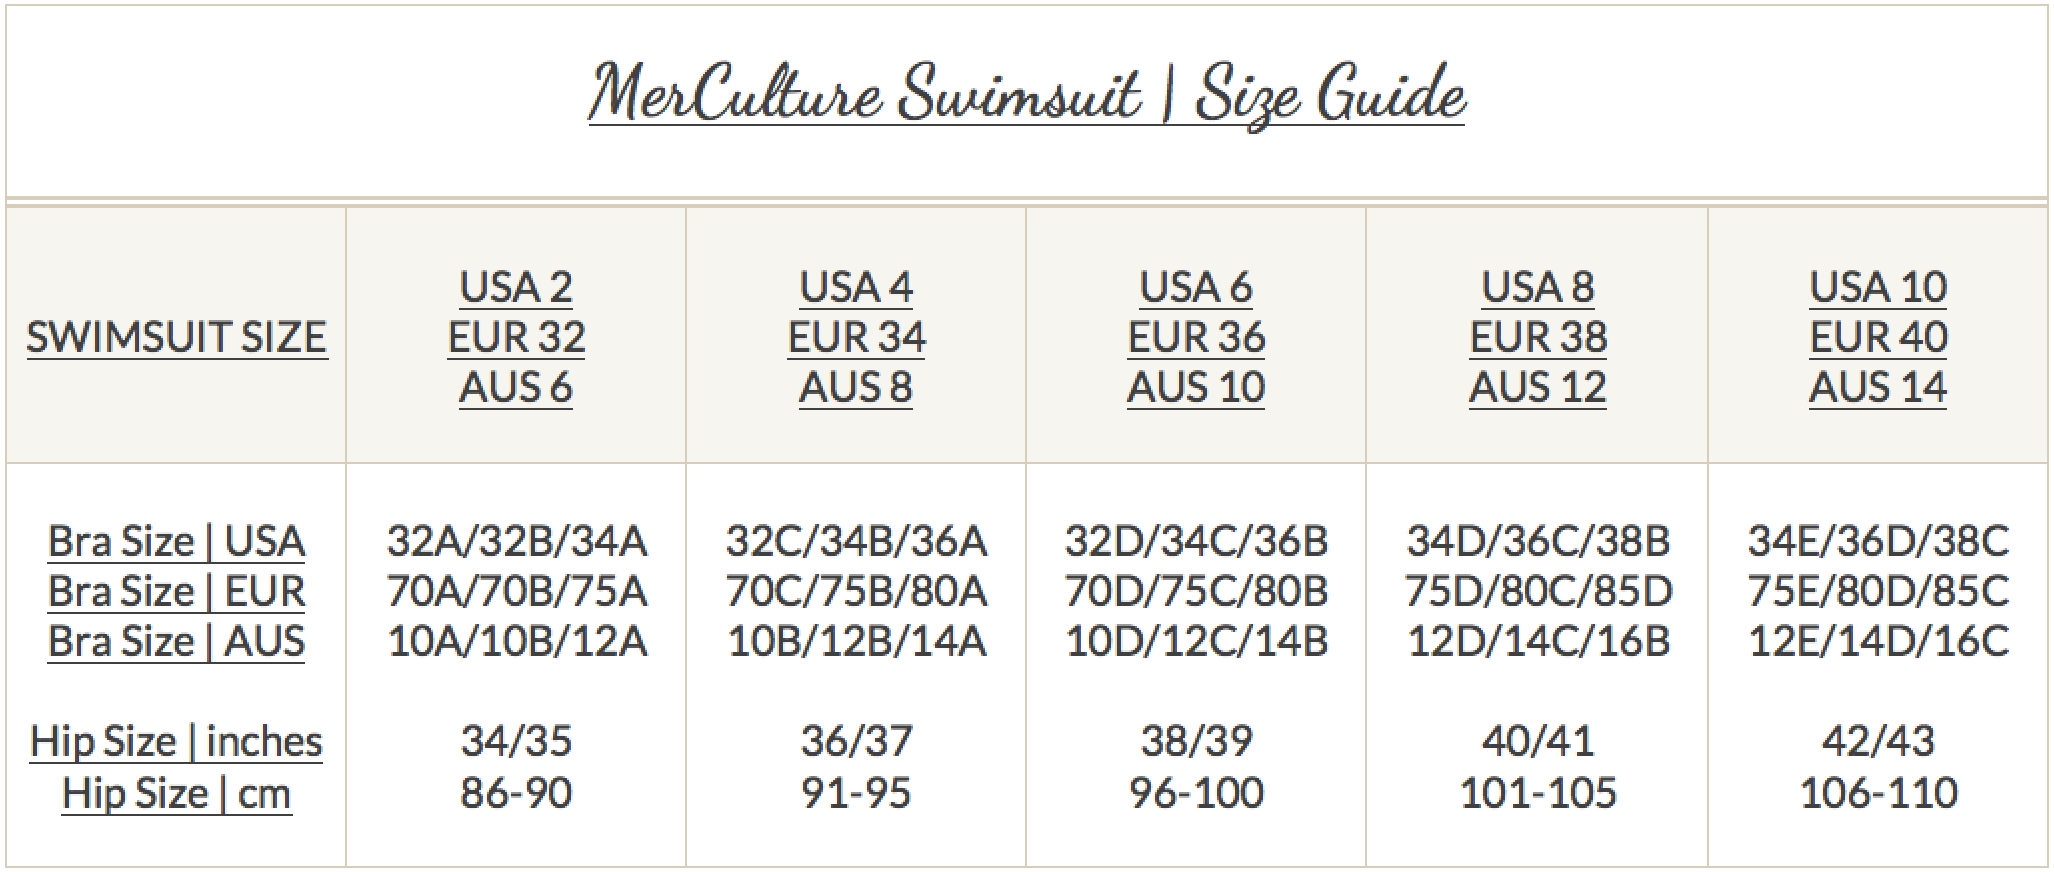 Mer Culture Swimsuit Size Guide